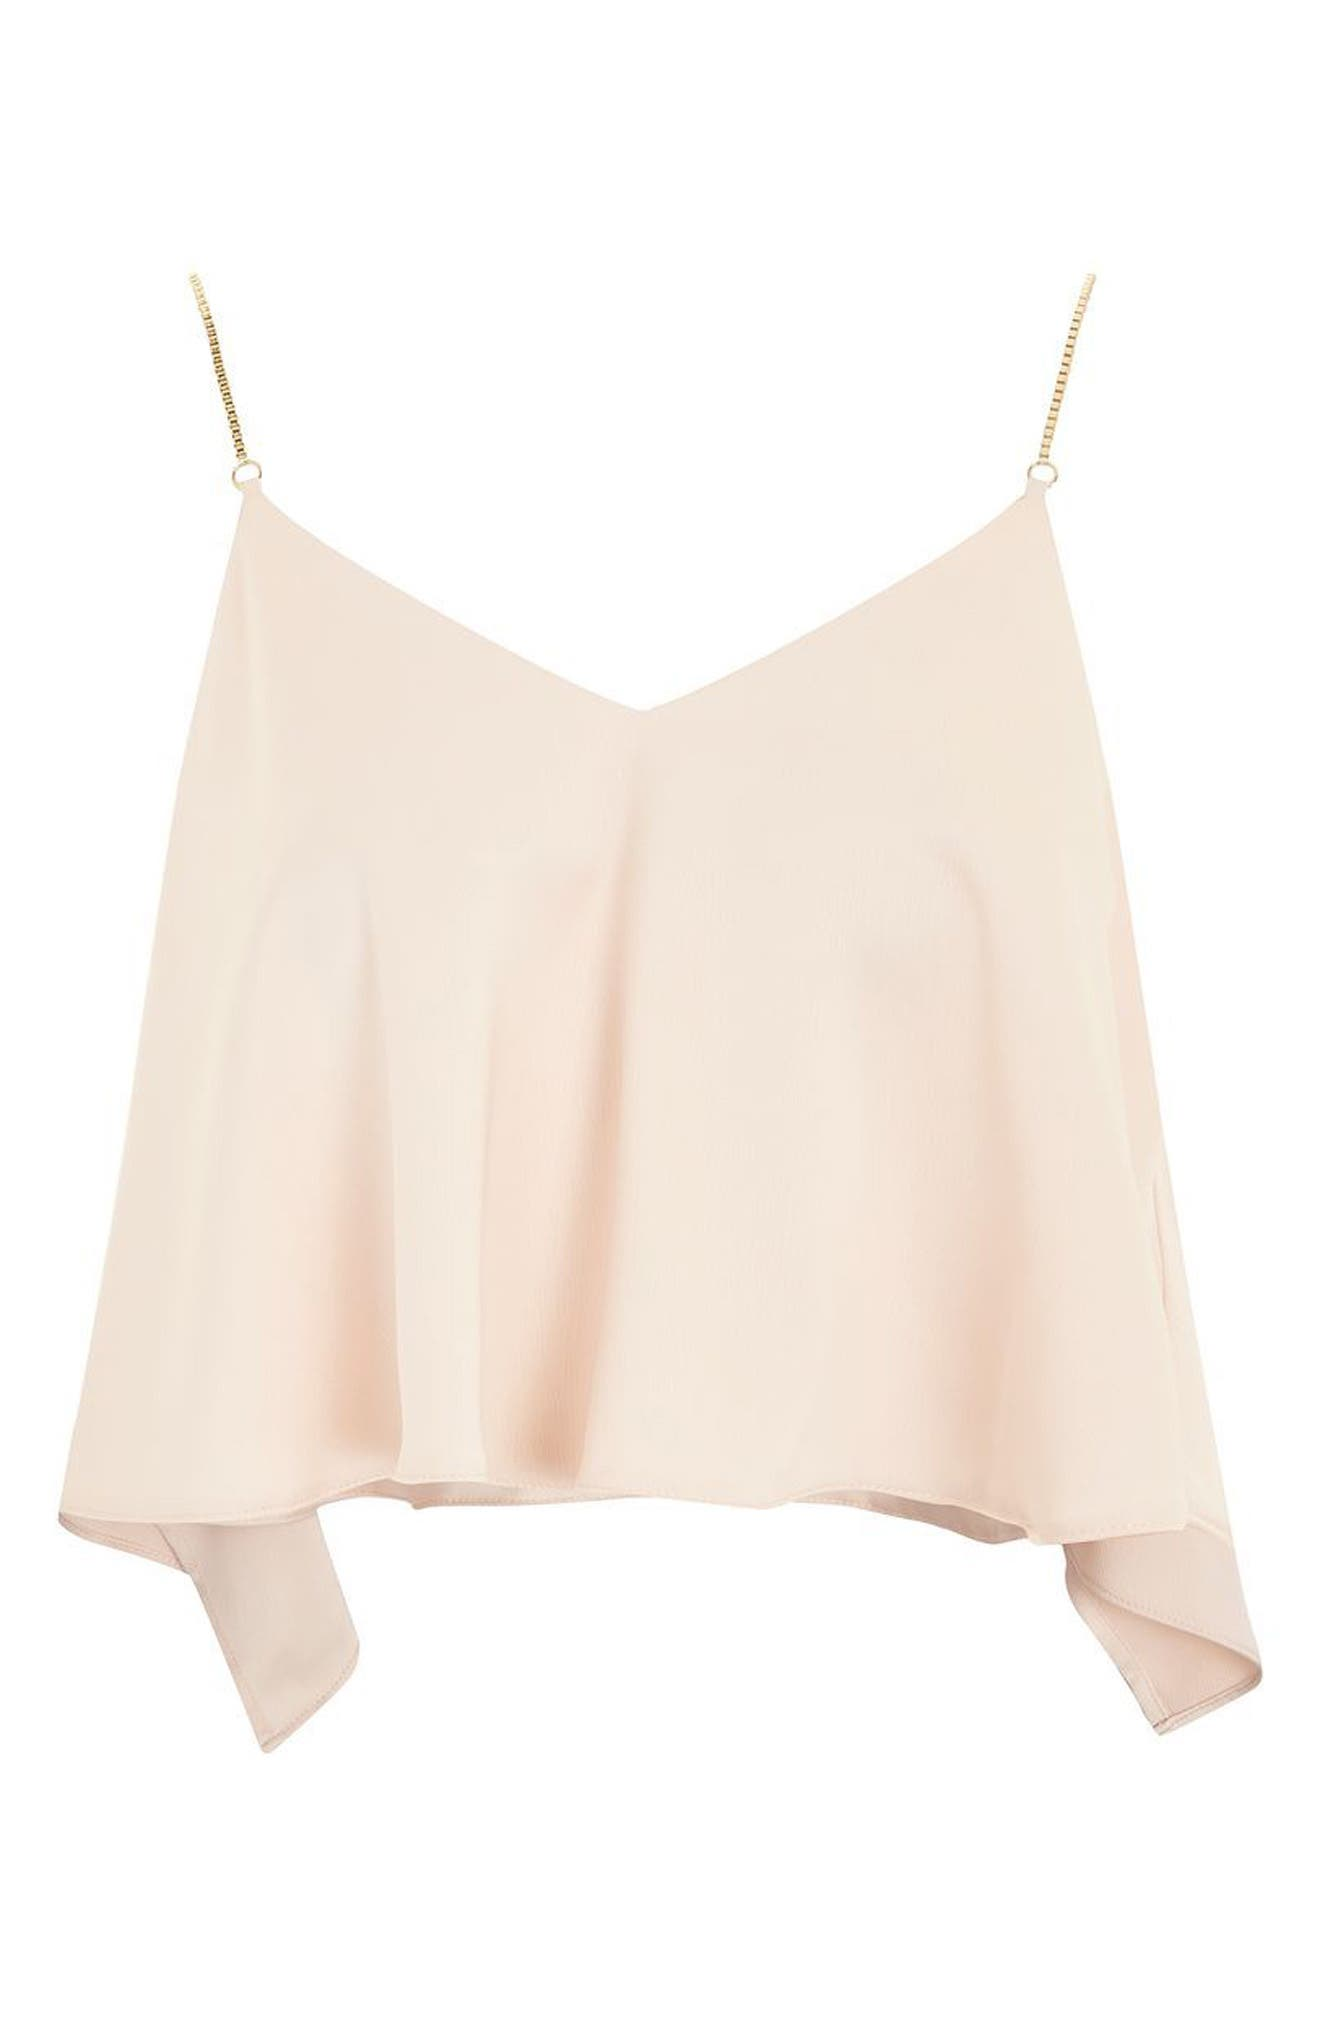 Chain Strap Camisole Top,                             Alternate thumbnail 4, color,                             Nude